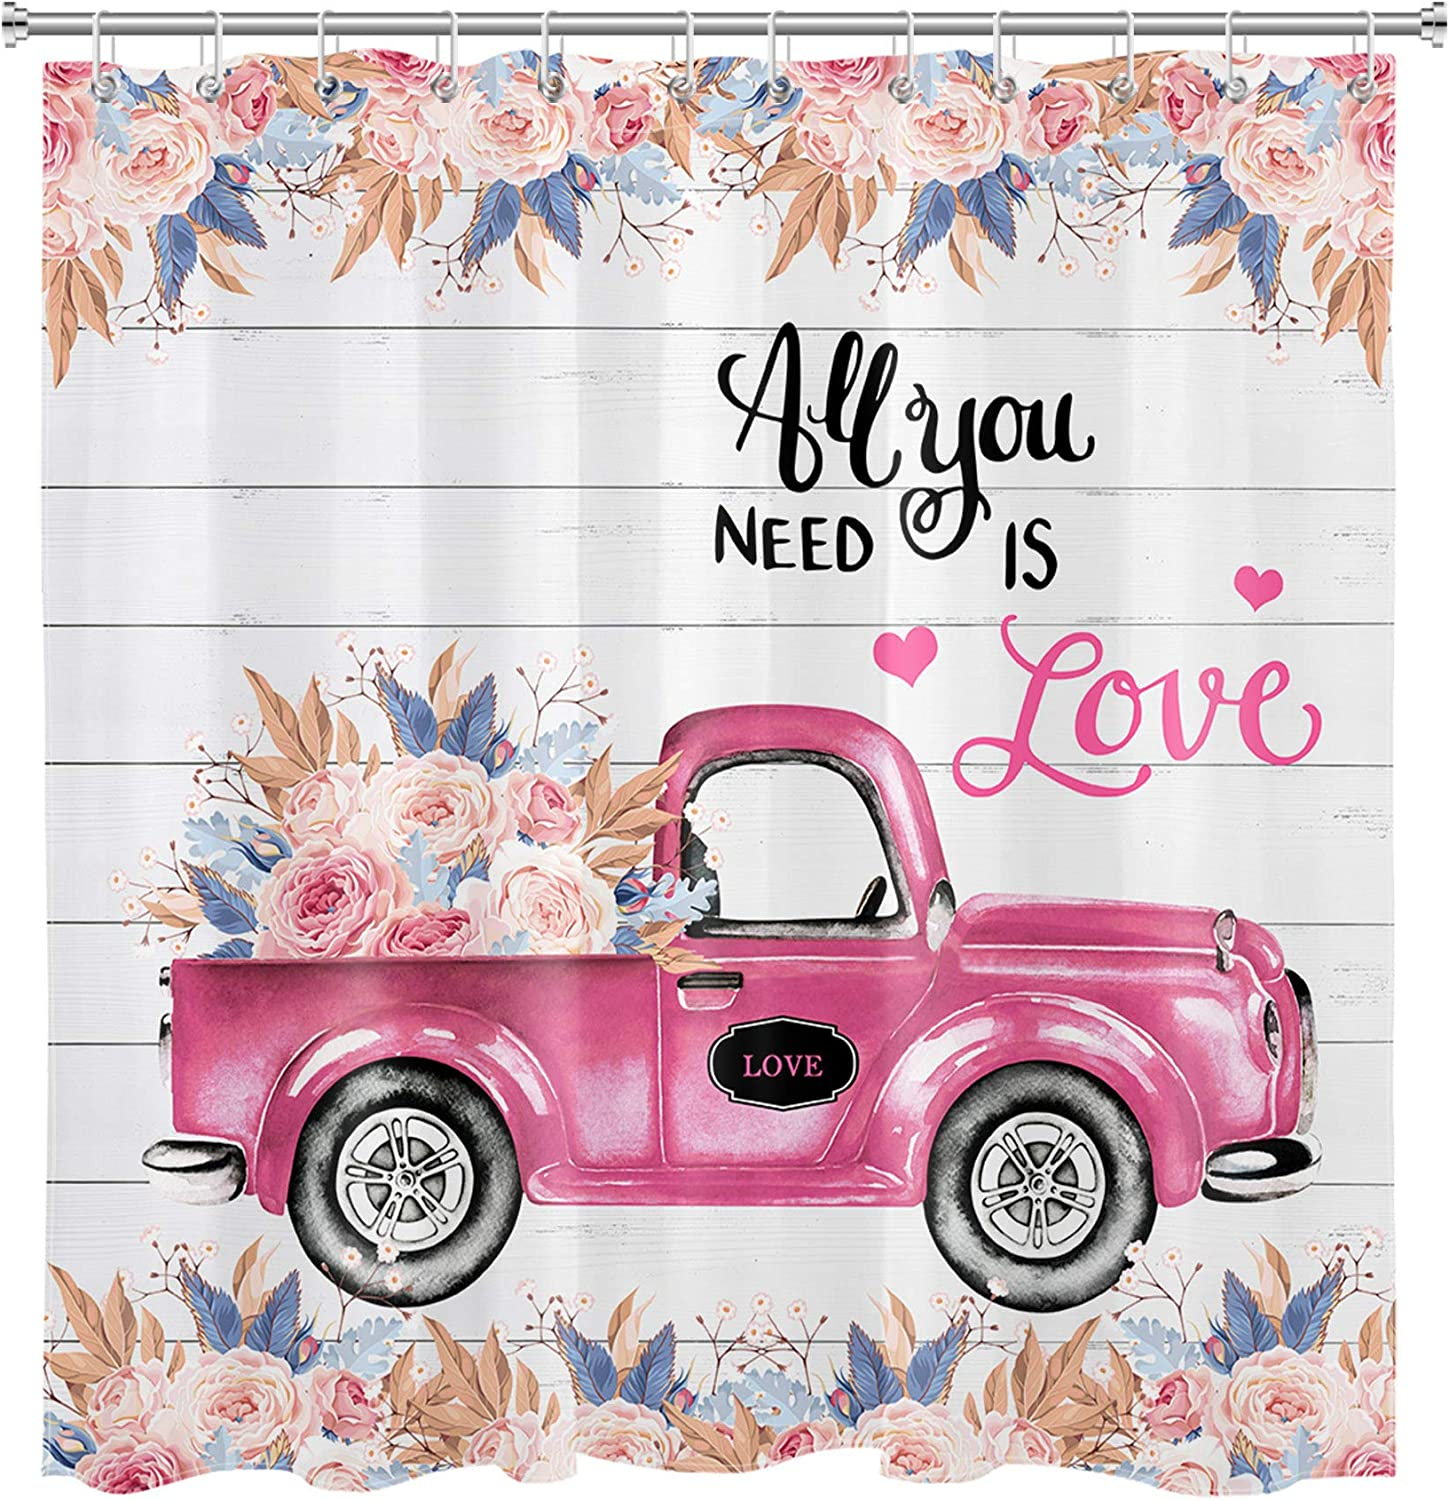 LB Vintage Truck Flower Shower Curtain Set Pink Rose Floral Love Decor Rustic Farmhouse Bathroom Curtain with Hooks 72x72 inch Waterproof Polyester Fabric Bathroom Decorations